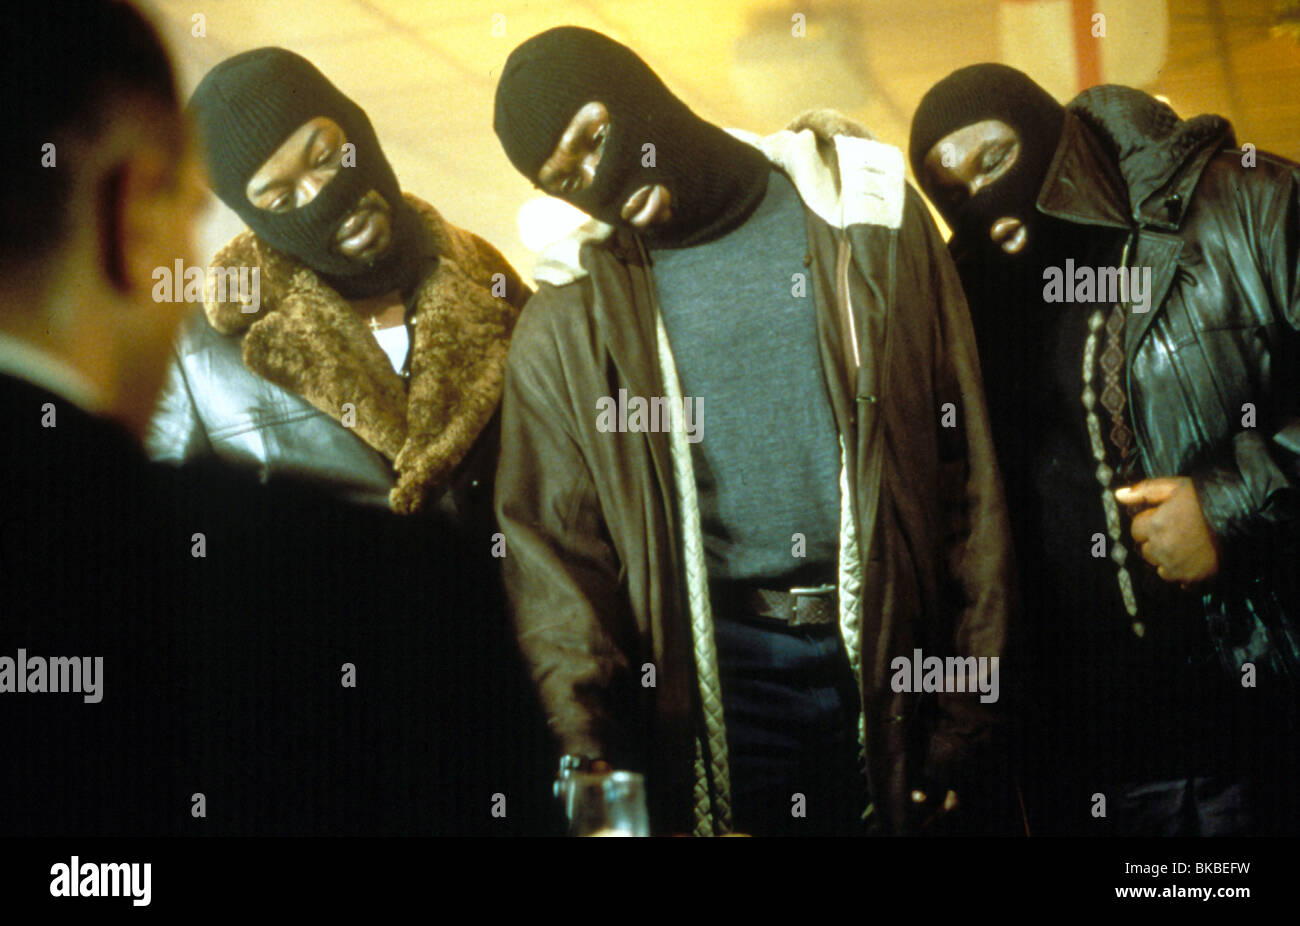 SNATCH (2000) LENNIE JAMES, ROBBIE GEE, ADE SNAT 053 - Stock Image